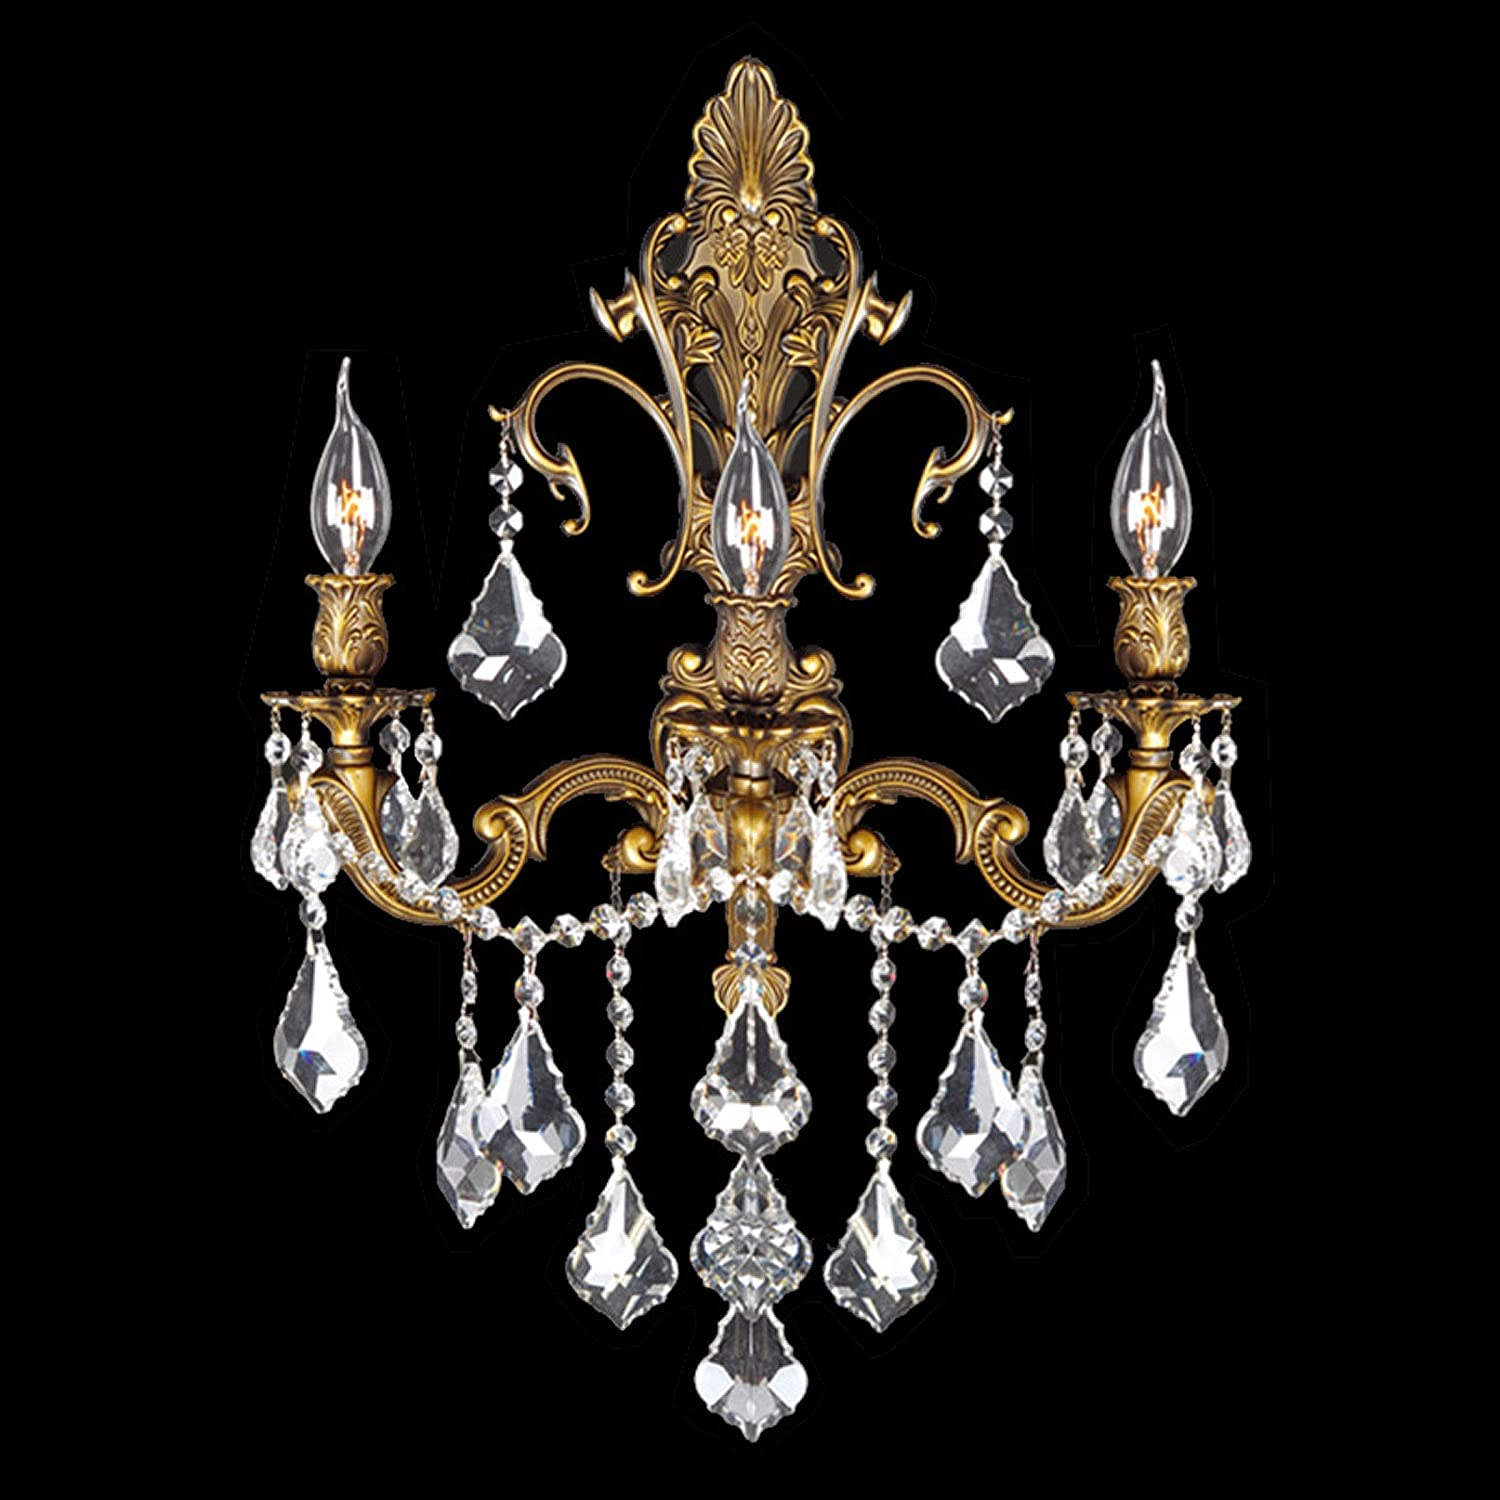 Worldwide lighting versailles collection 3 light antique bronze worldwide lighting versailles collection 3 light antique bronze finish crystal wall sconce 17 w x 24 h large amazon aloadofball Image collections